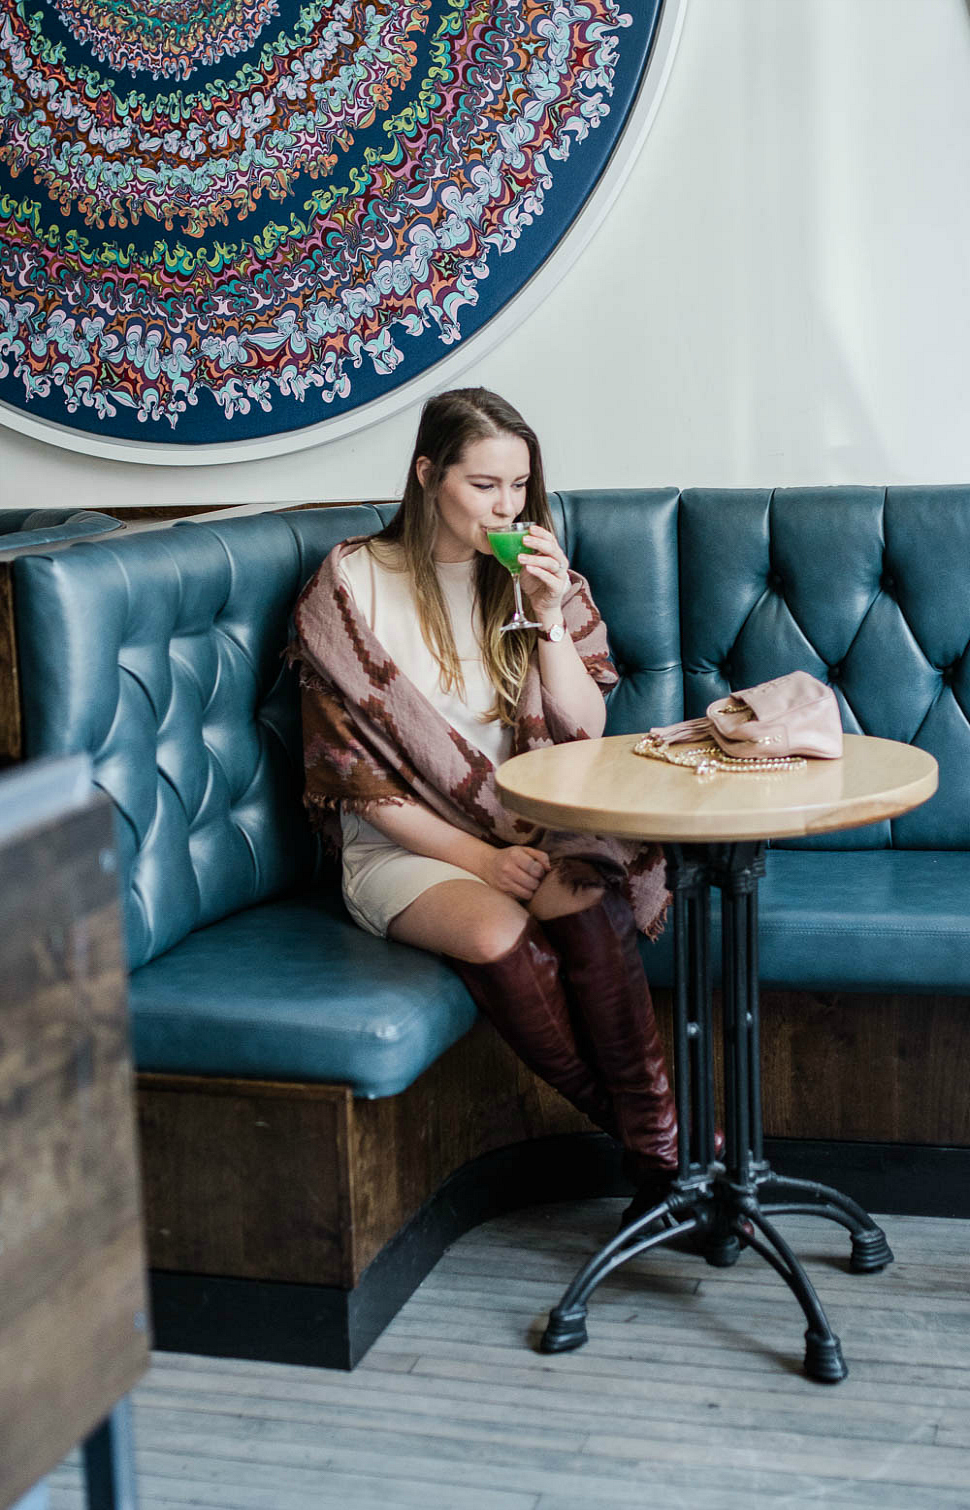 standby-detroit-bar-city-guide-things-to-do-in-detroit-rosecitystyleguide-outfit-aritzia-scarf-over-the-knee-boots-shirt-dress-canadianblogger-14